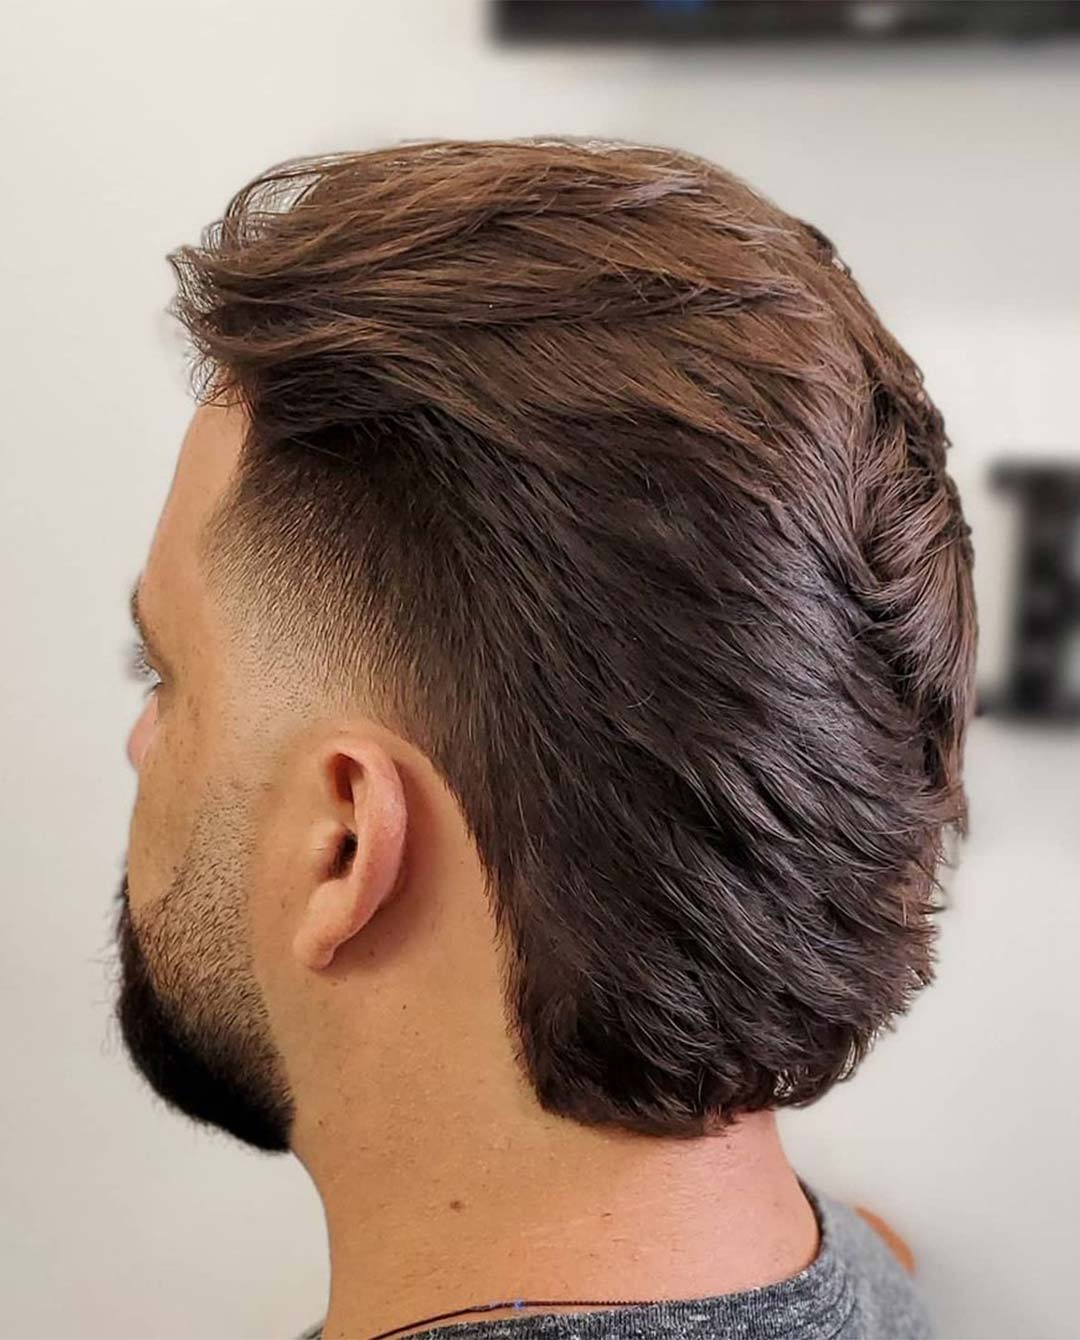 Ducktail with Taper Fade